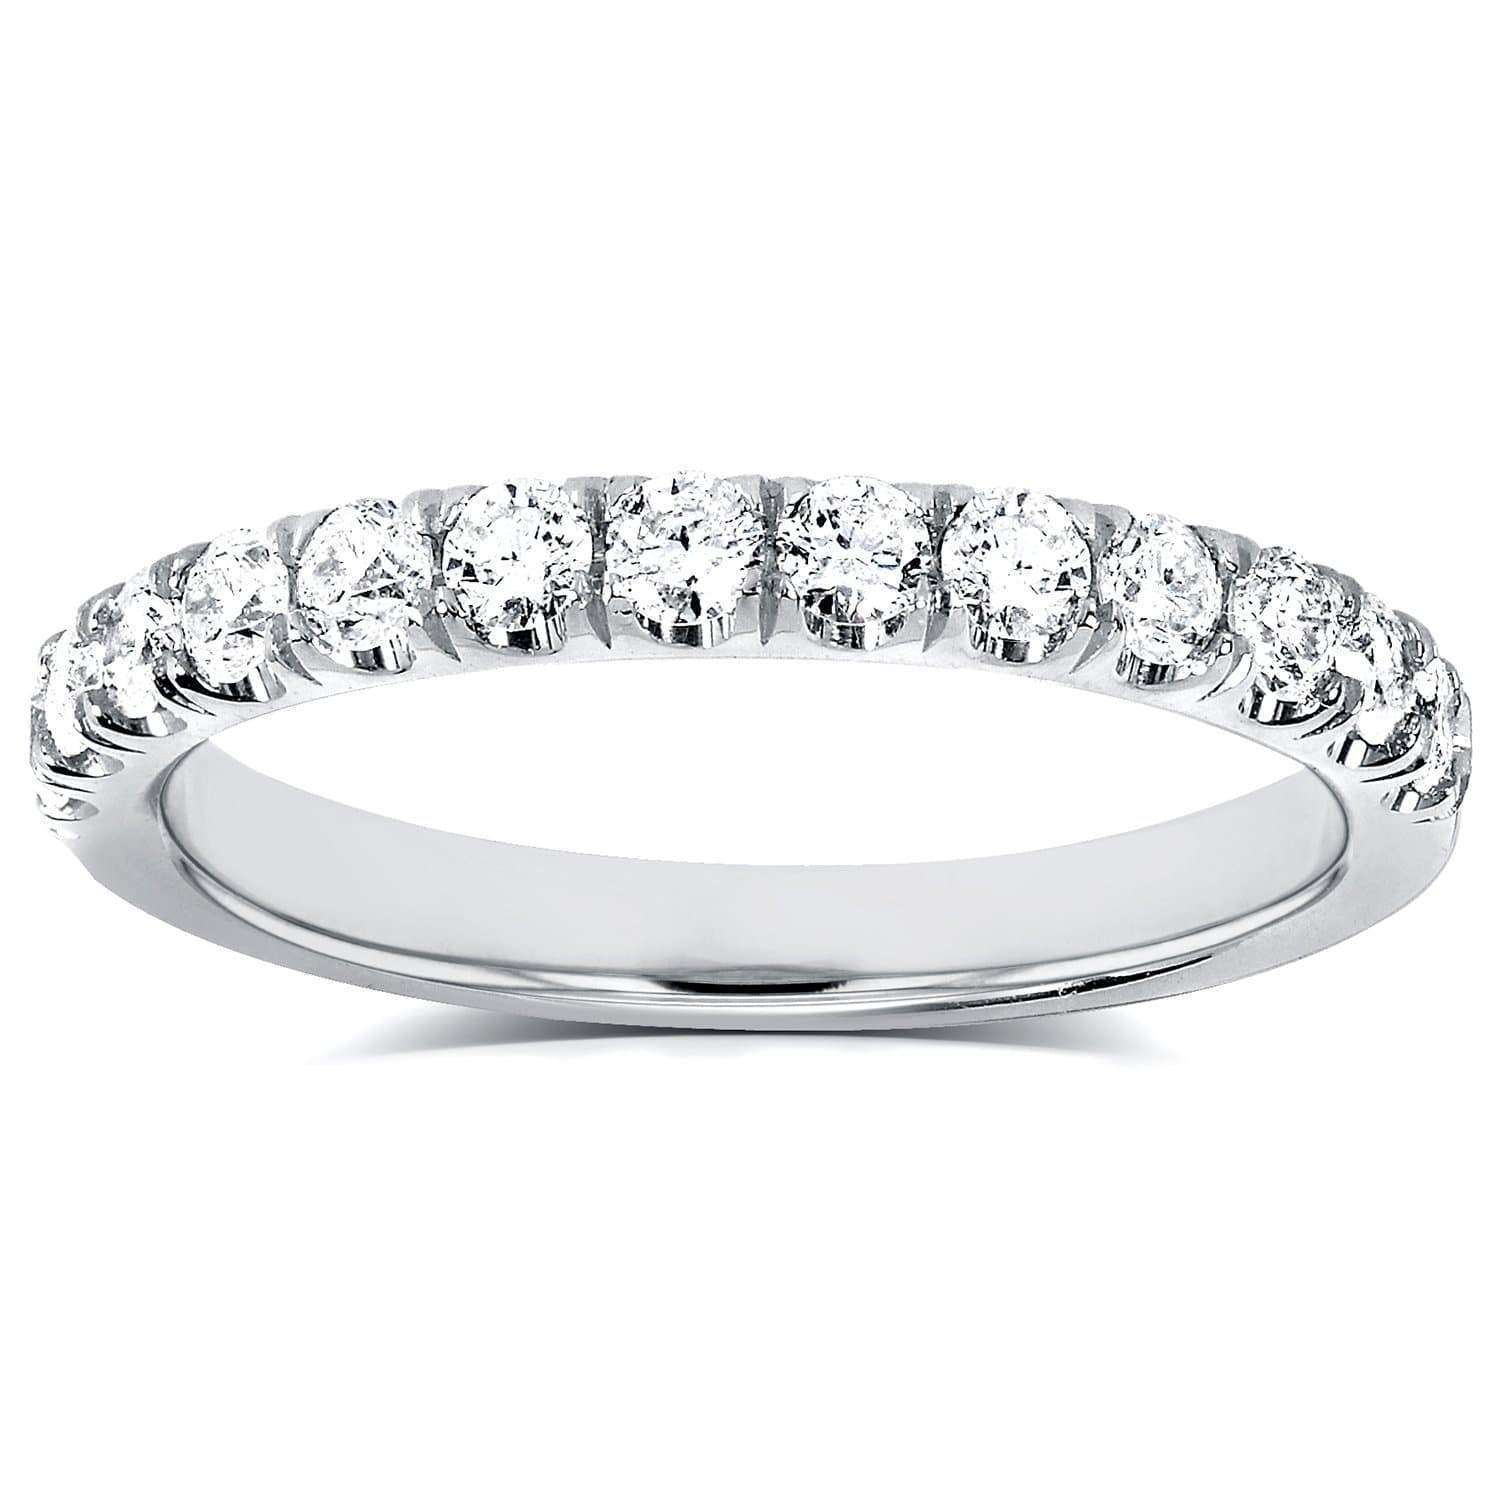 Flame French Pave Lab Grown Diamond Comfort Fit Womens Wedding Band 1/2 CTW 14k White Gold (DEF/VS)